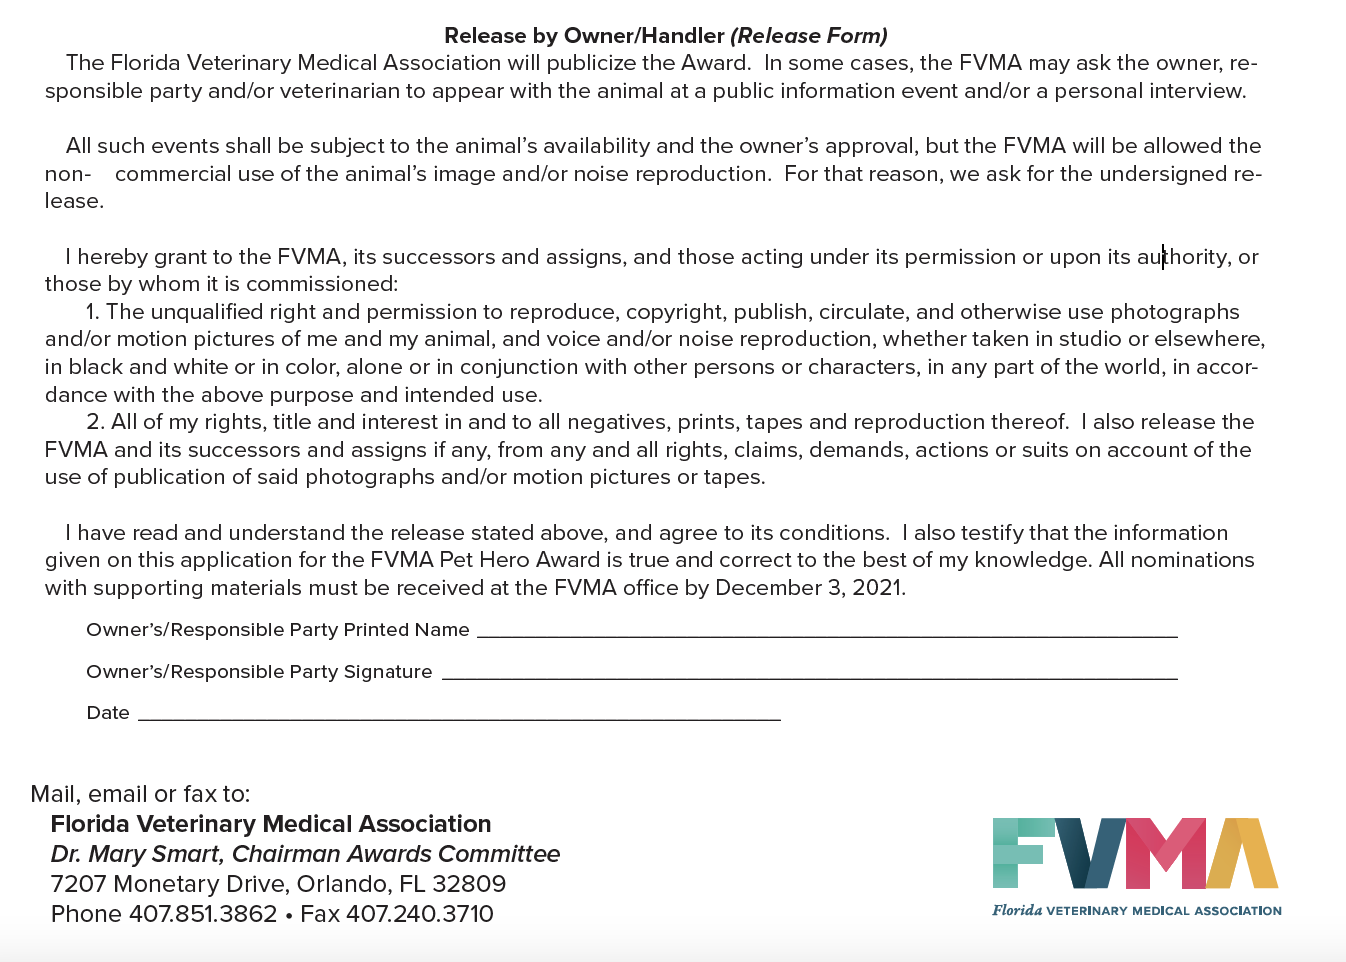 Please note, if your nominee is selected as the winner, the owner/handler of the animal will be and be required to sign a release form (see below) regarding the use of photo/video/audio recordings. Please ensure that the owner/handler is aware that this release will be required for the award to be bestowed.